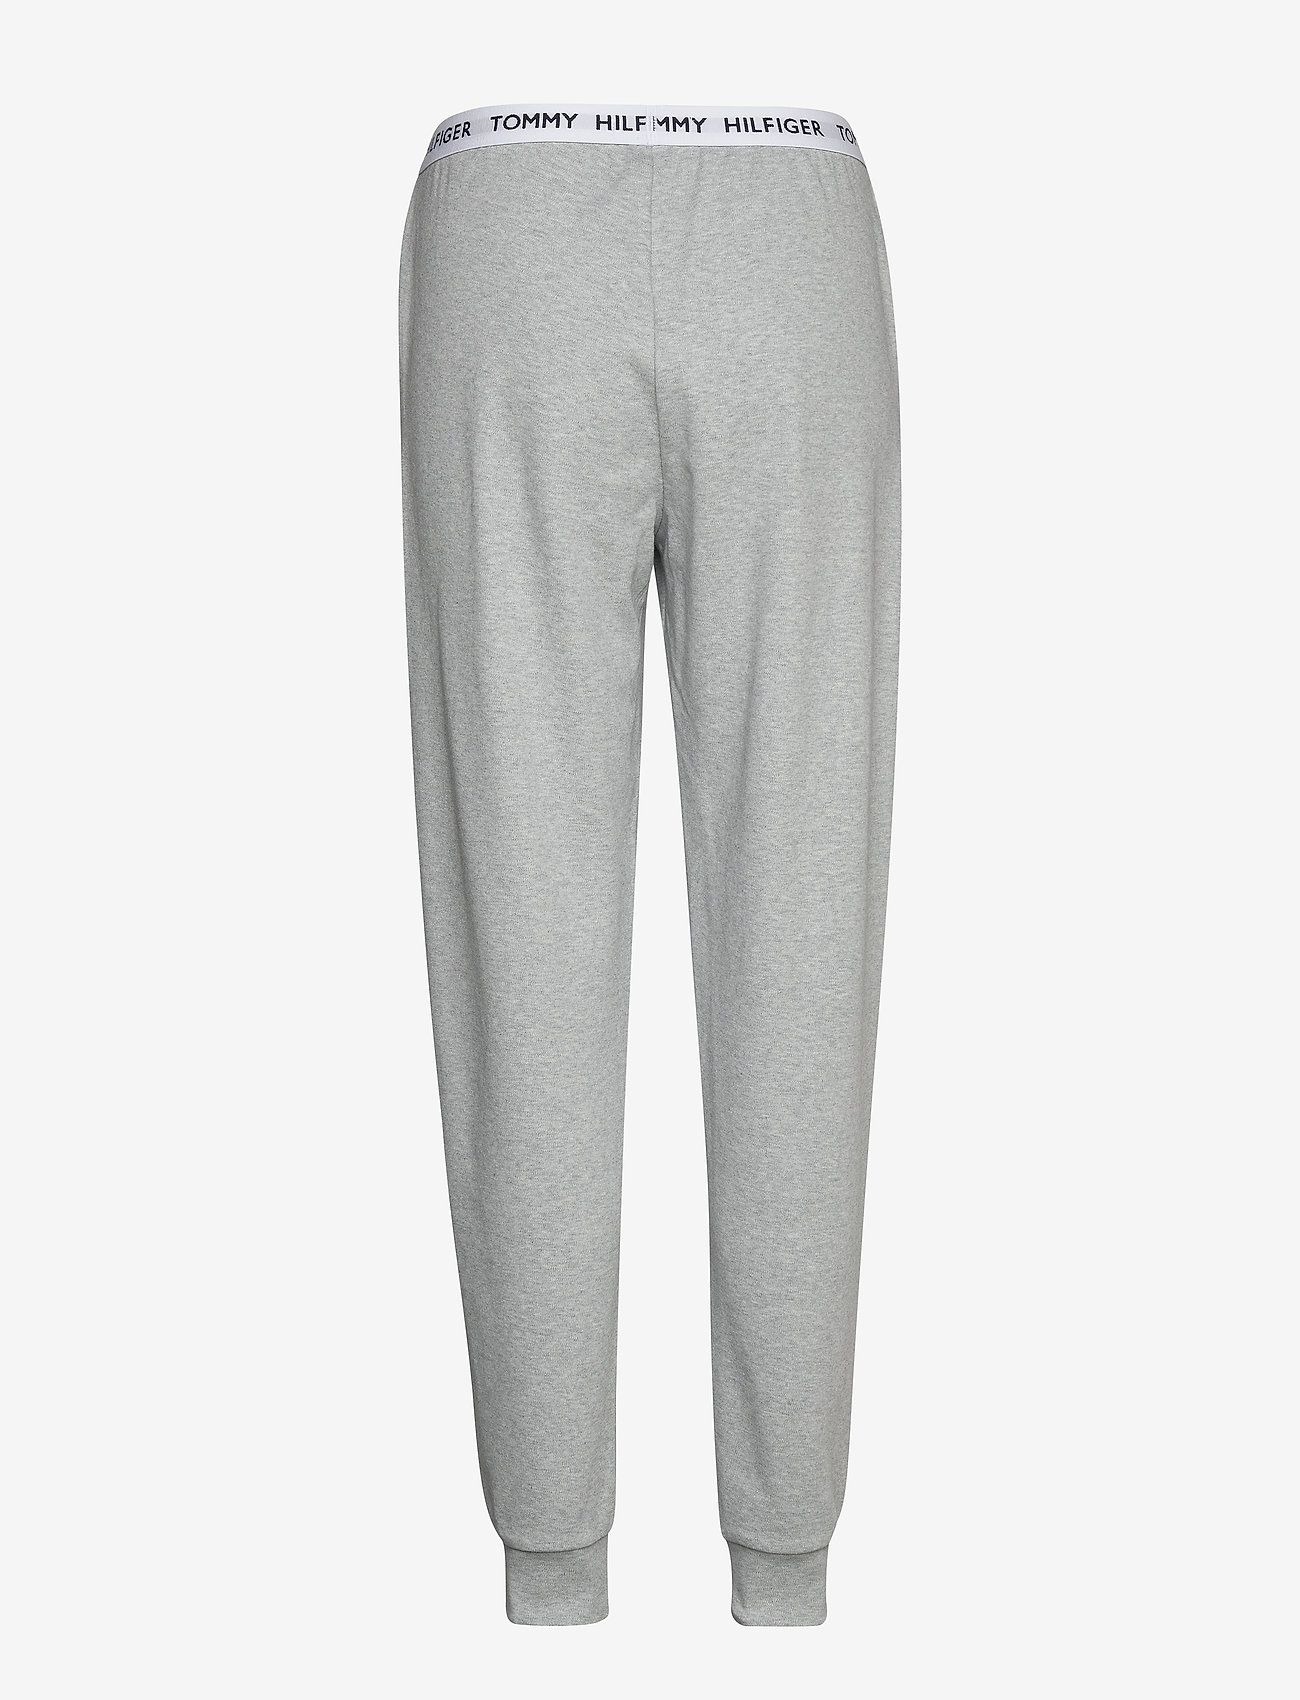 Tommy Hilfiger - PANT LWK - underdele - grey heather - 1